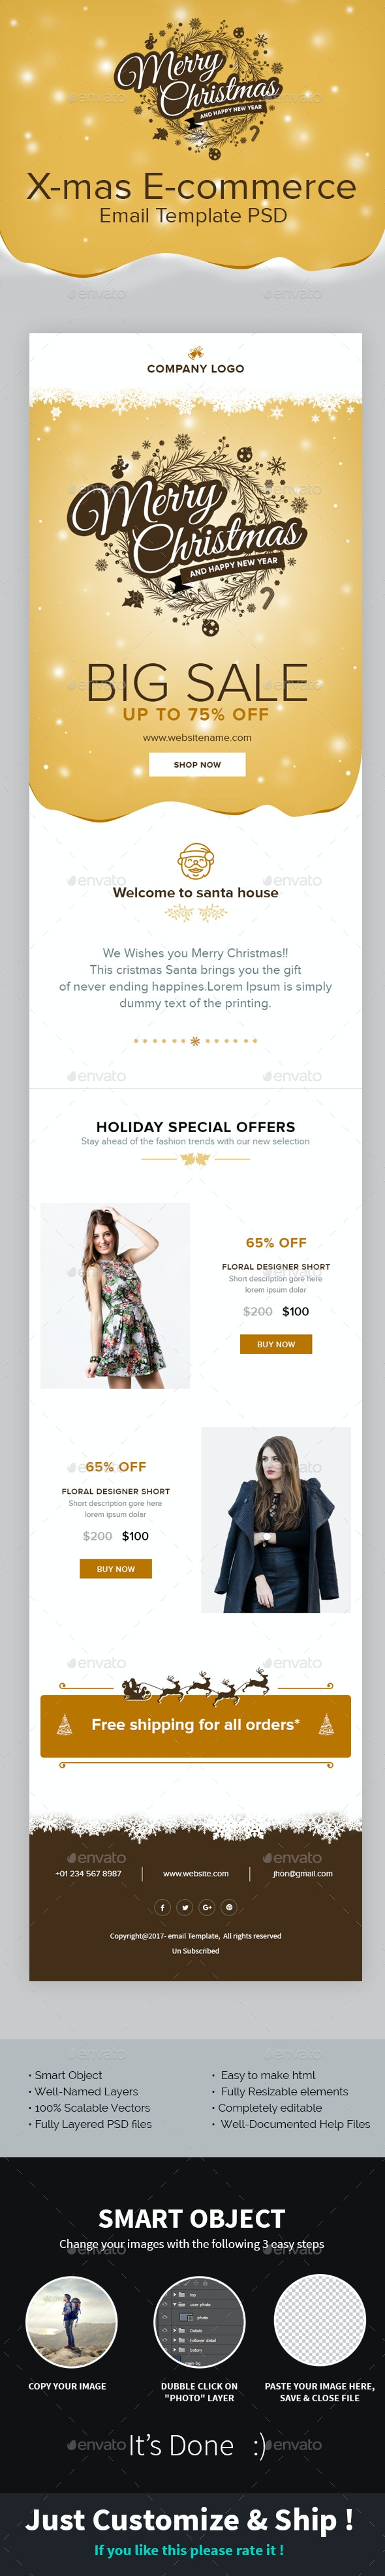 X-mas E-commerce - Christmas Shopping Offer Email Template PSD - E-newsletters Web Elements